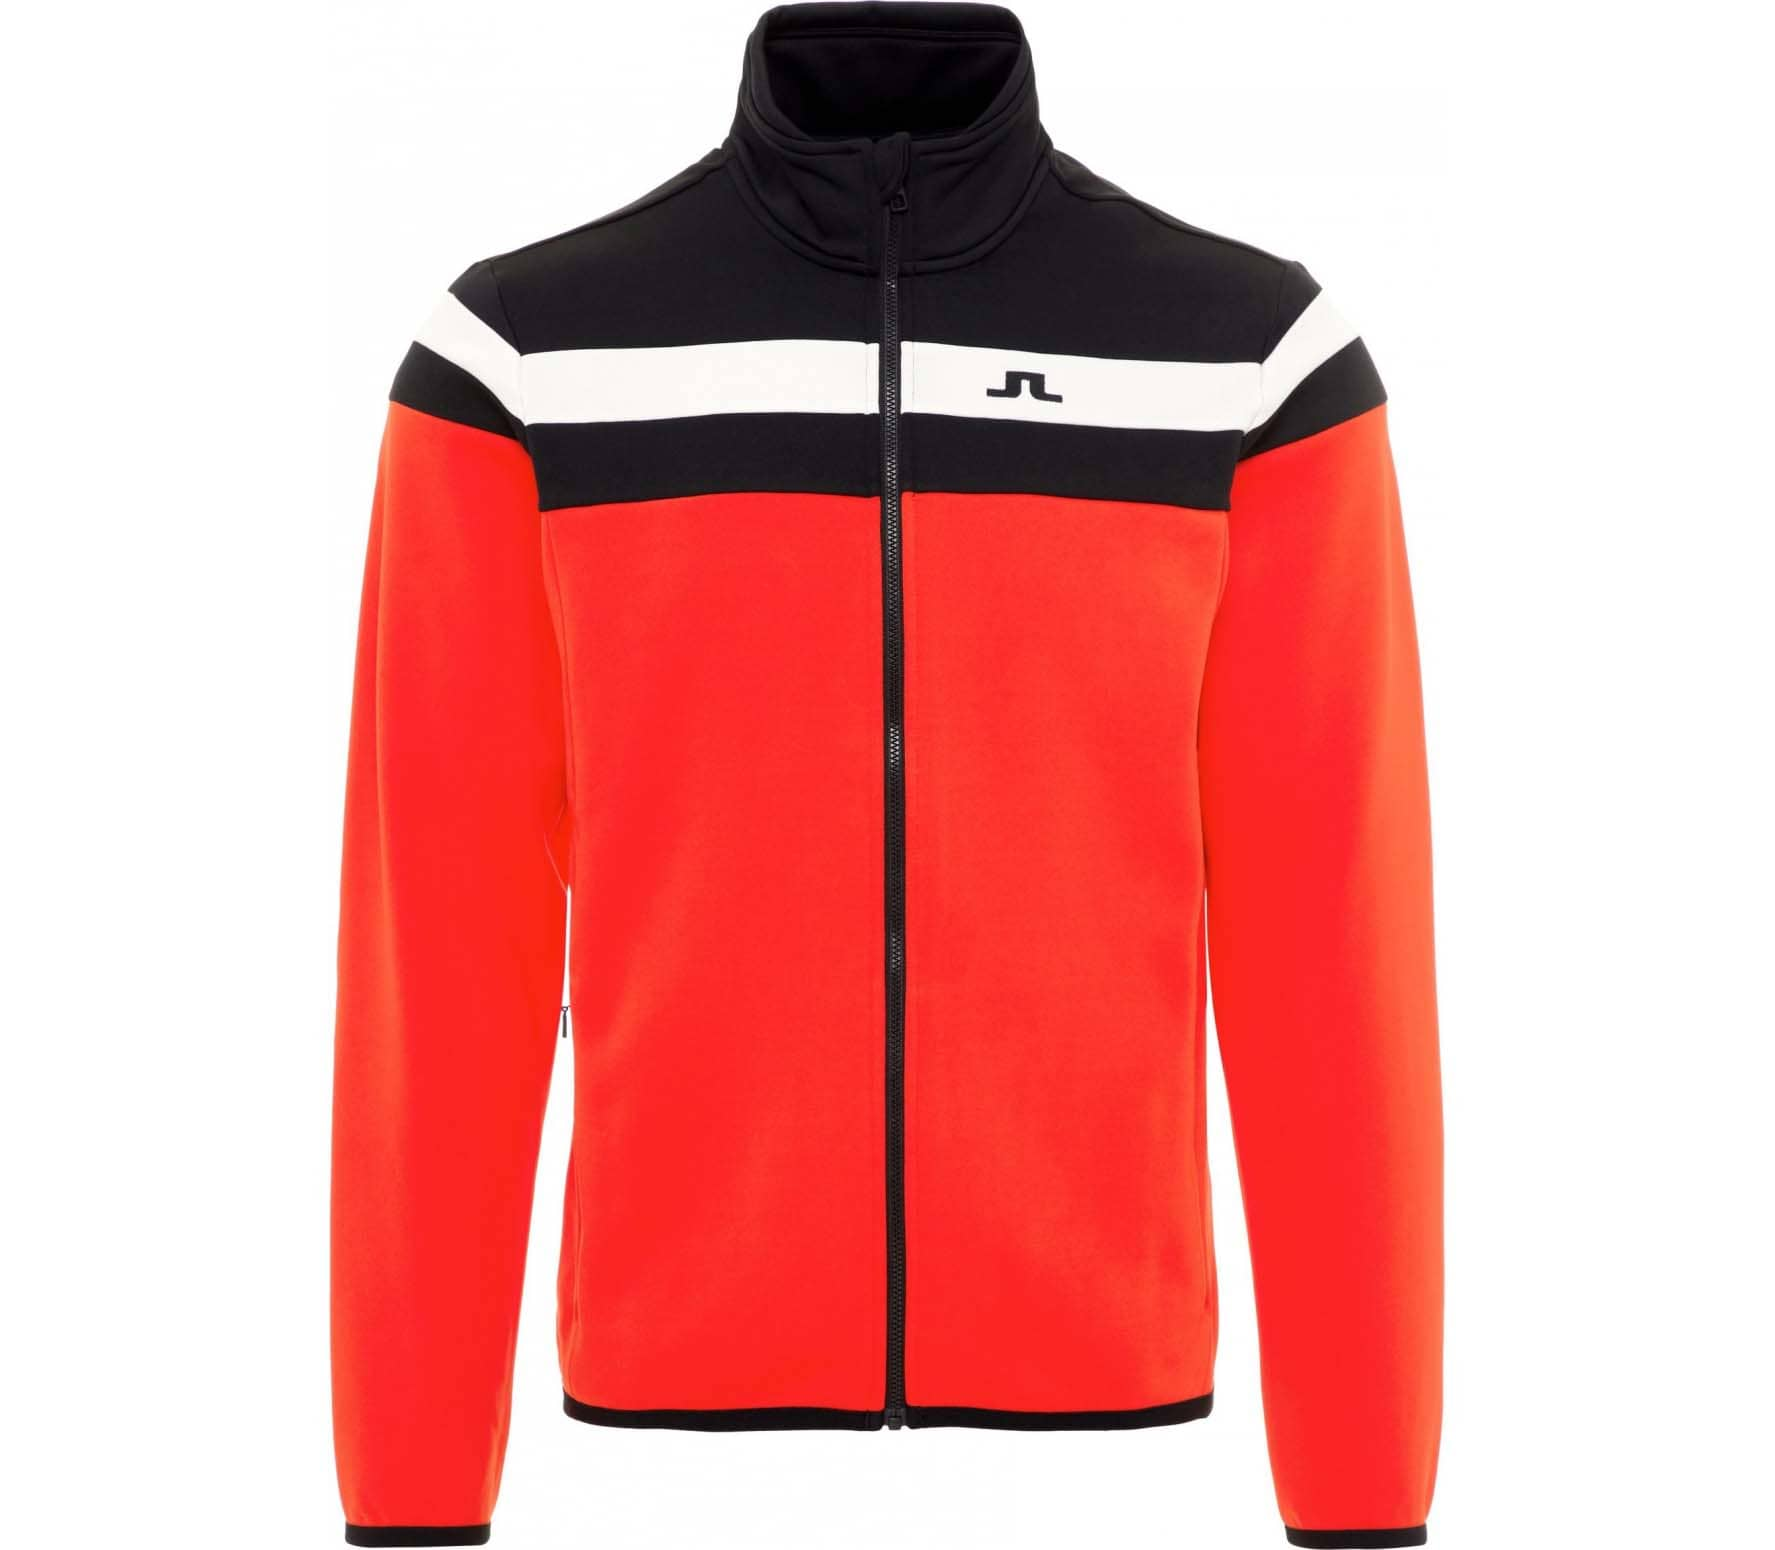 J.Lindeberg - Moffit Mid Tech Jersey men's jacket (red)